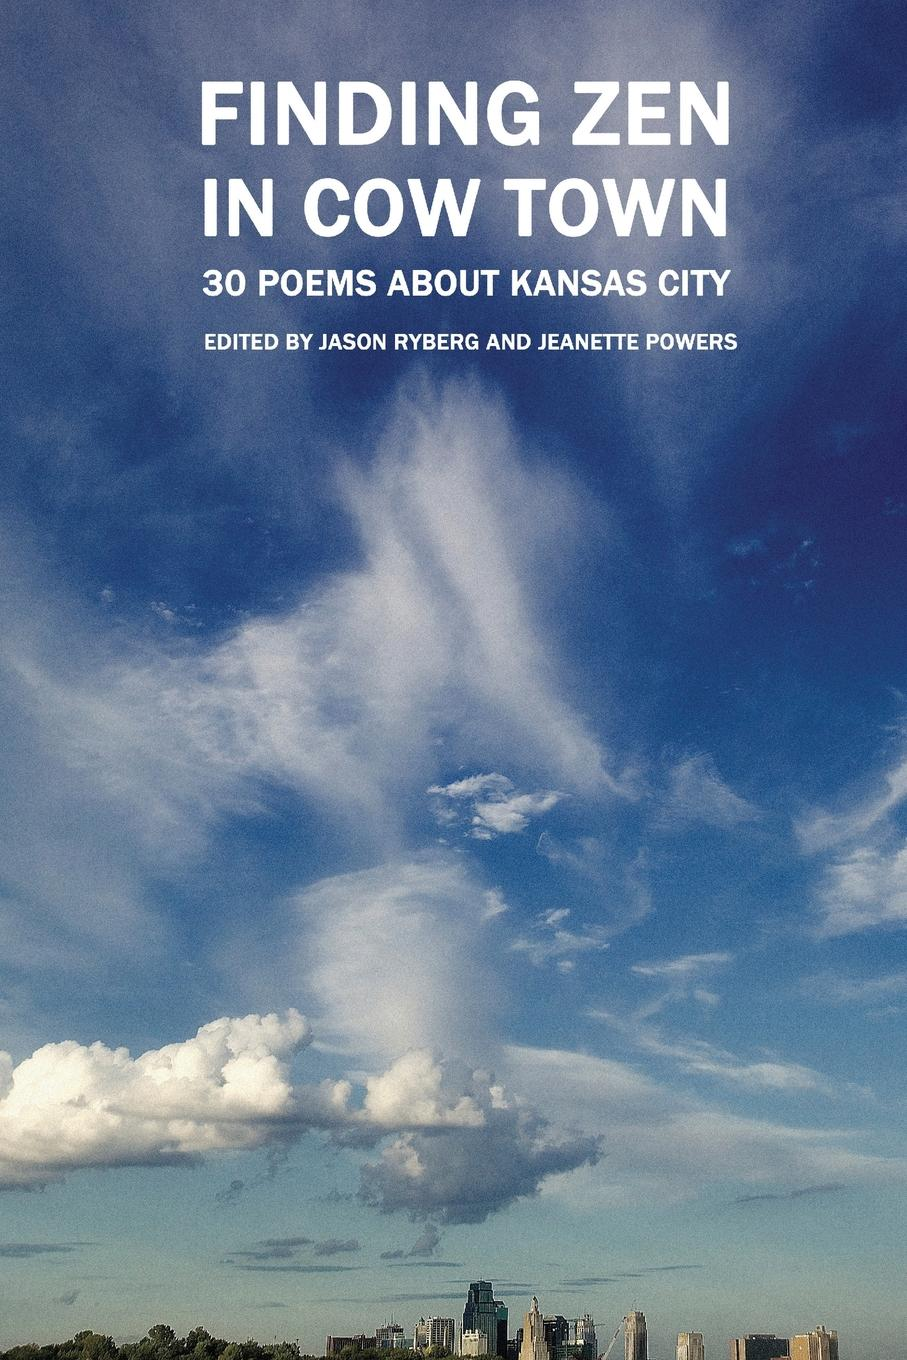 Finding Zen In Cow Town. 30 Poems About Kansas City poems to live by in troubling times